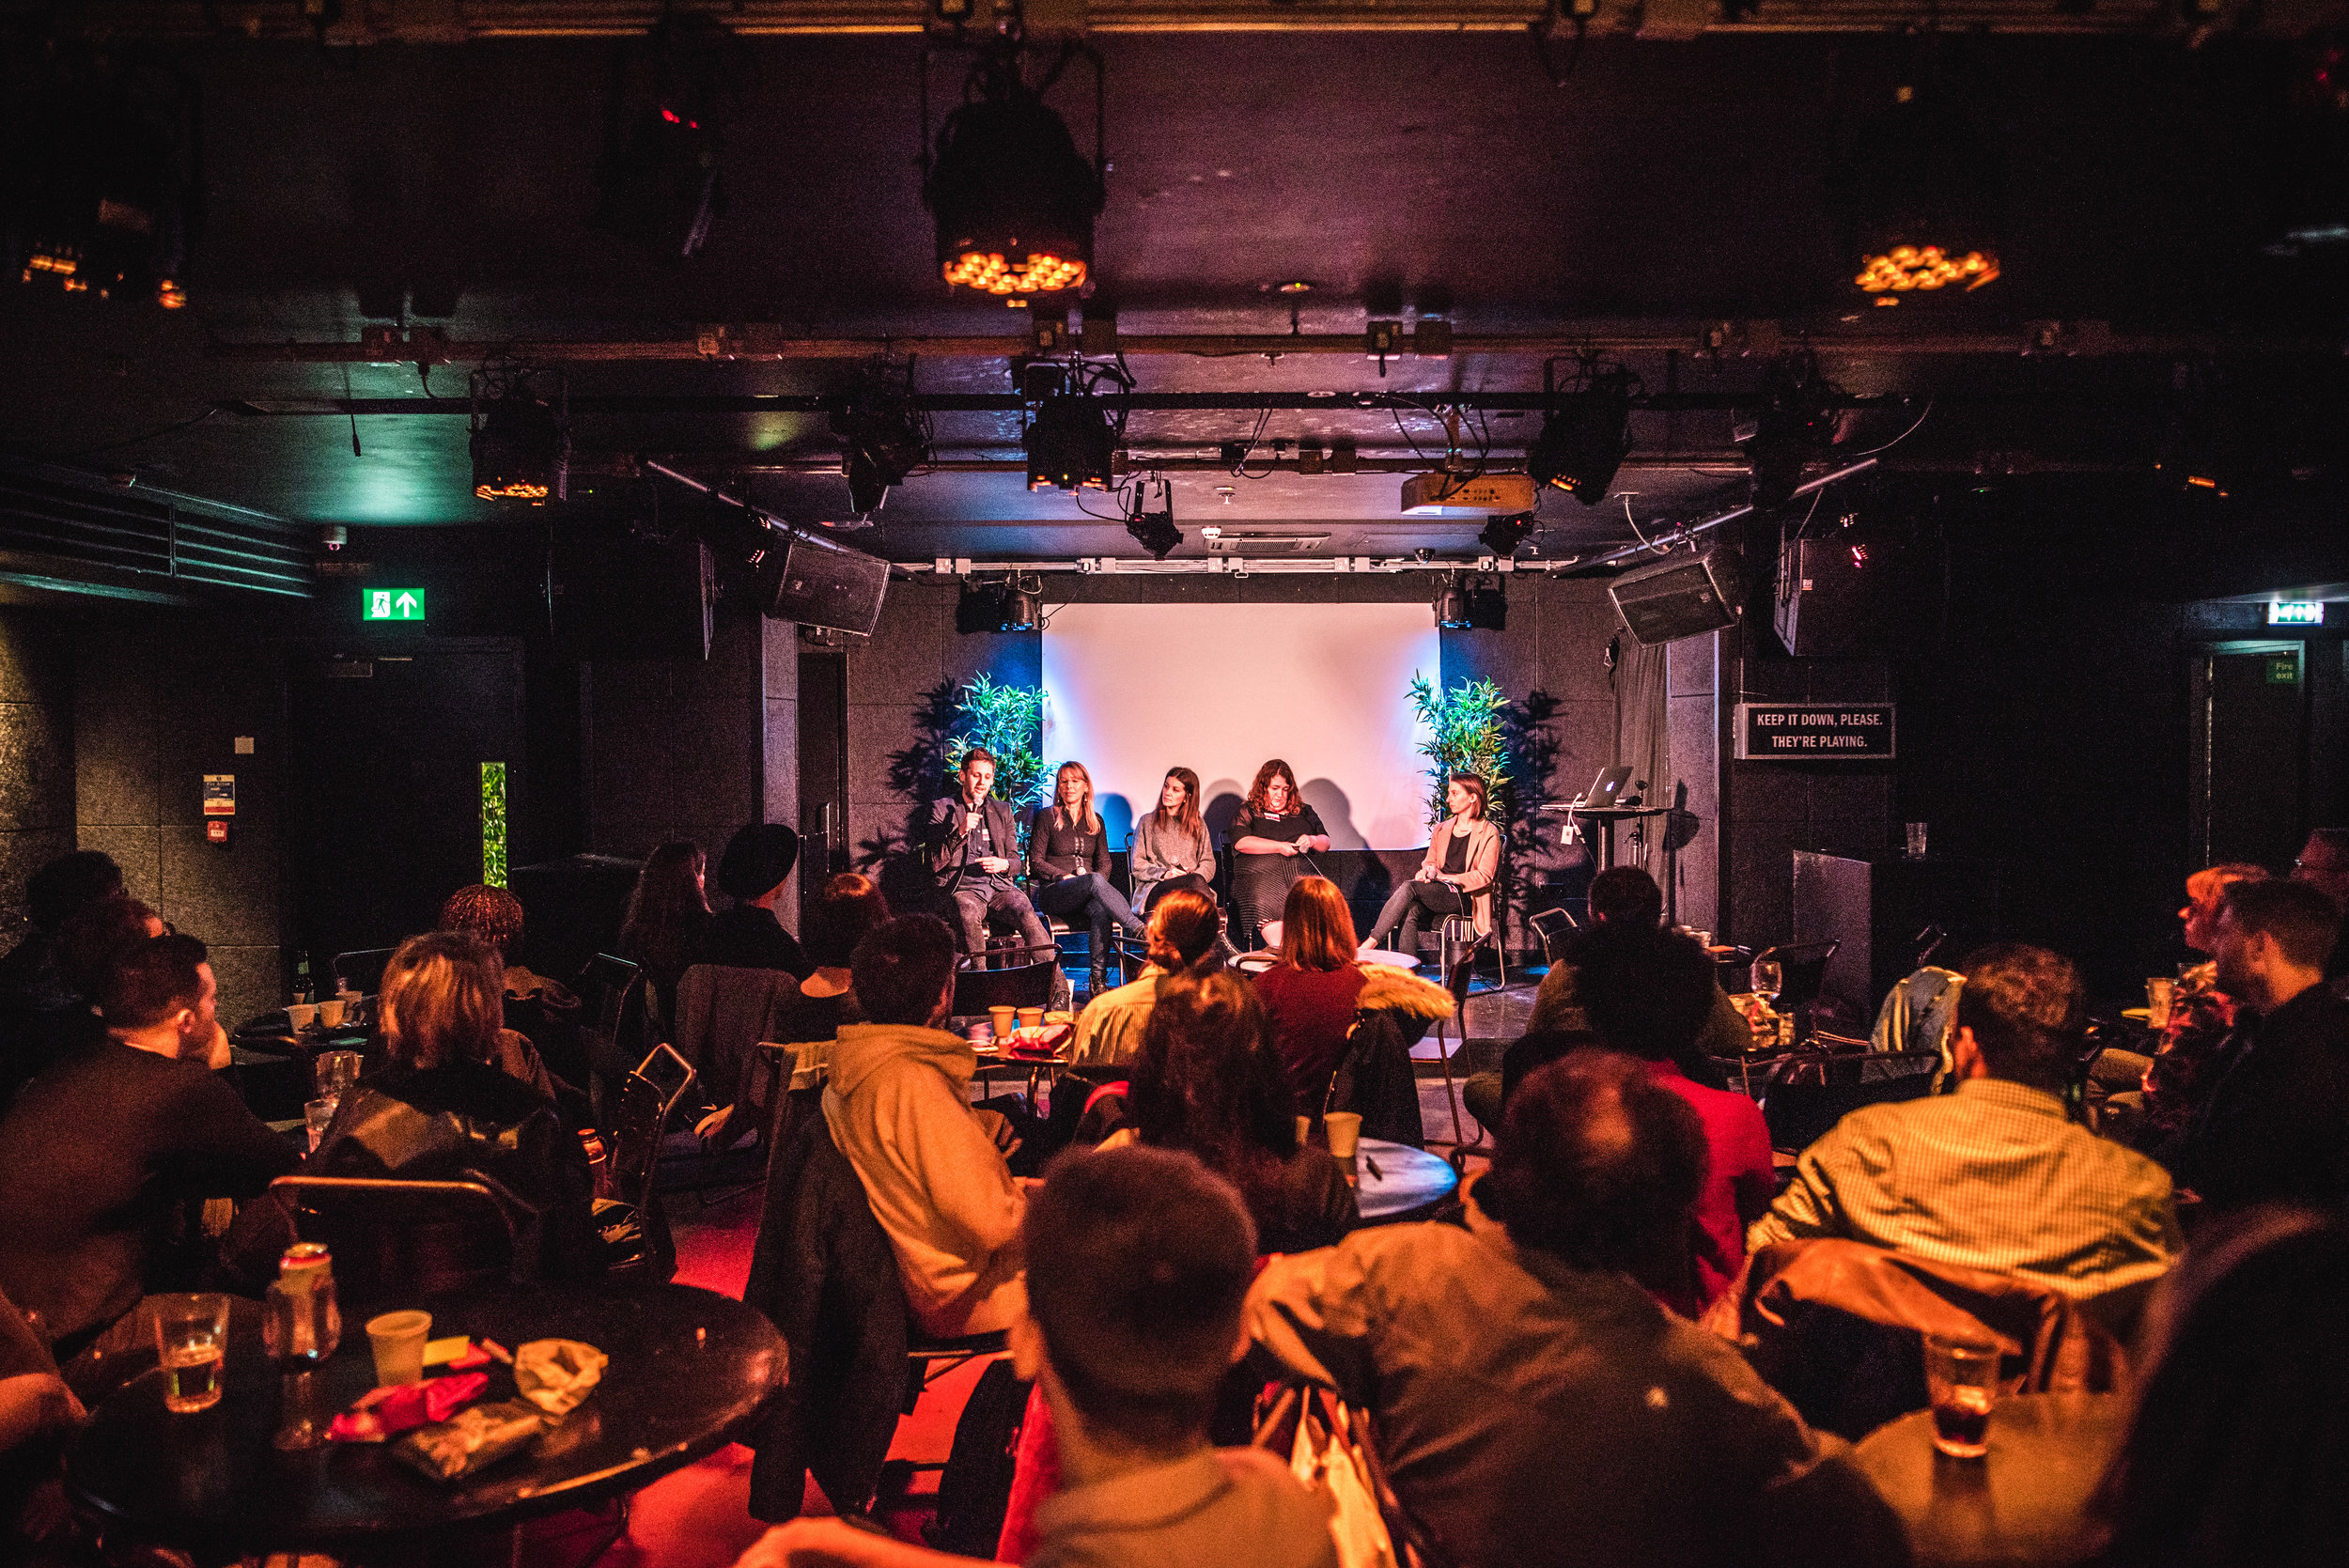 Panelists during the Open Music Ace Hotel Shoreditch artists event (photo credit: Rob Jones / Ace Hotel Shoreditch)